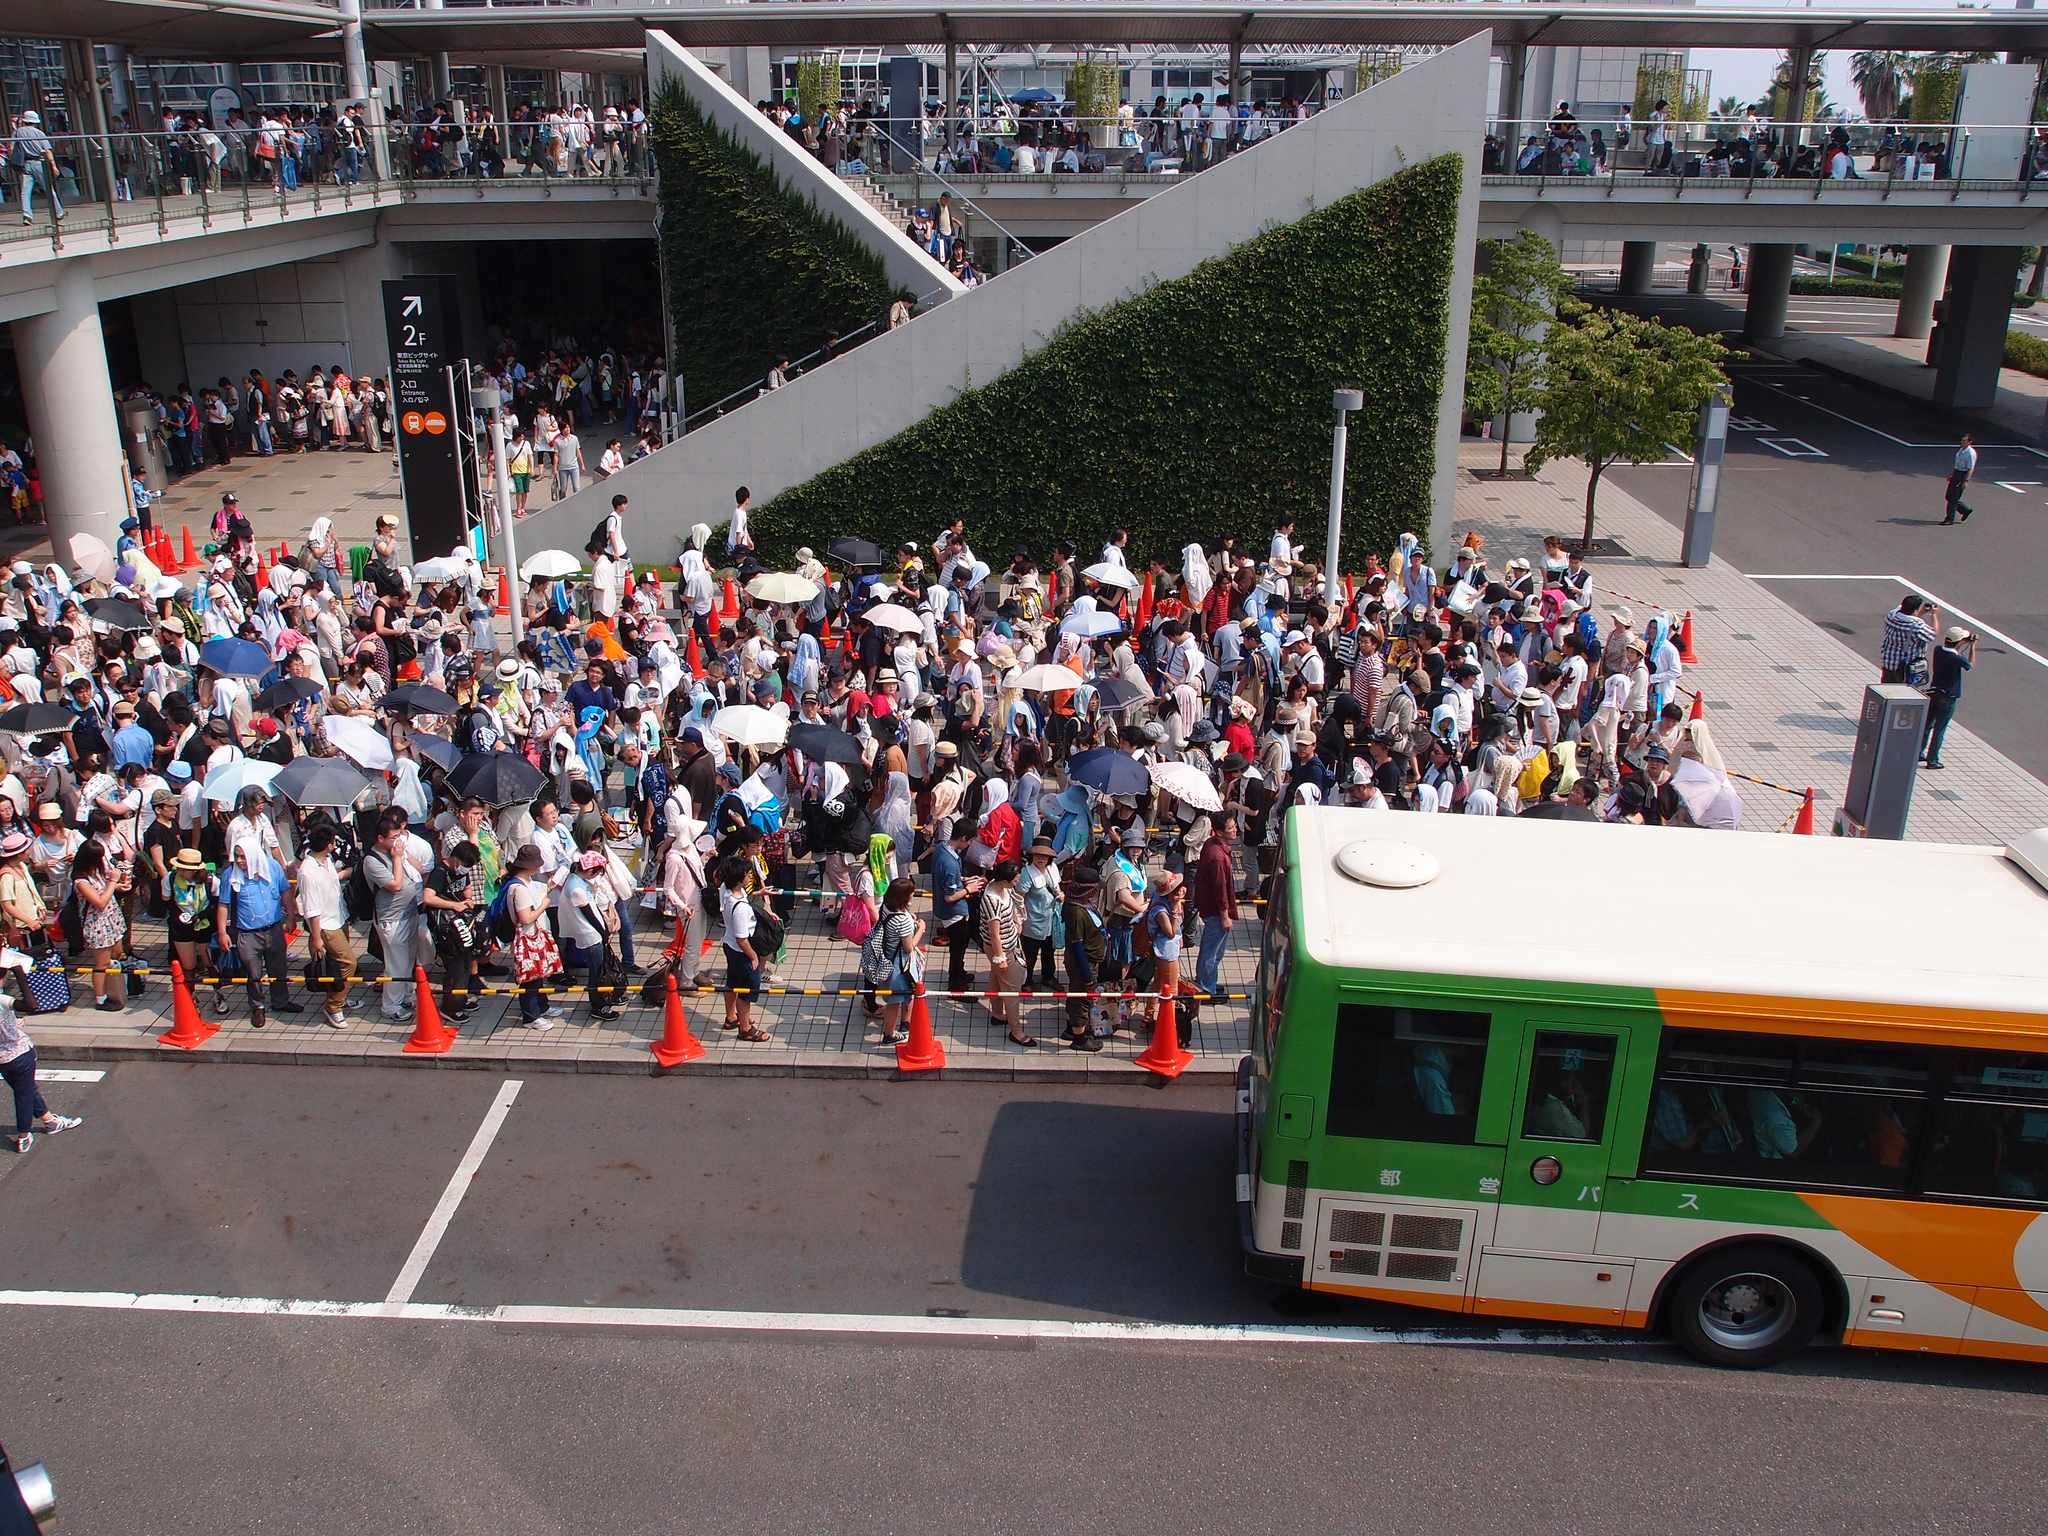 Guide to Comiket 9 Things to Do to Have a Great Experience 4